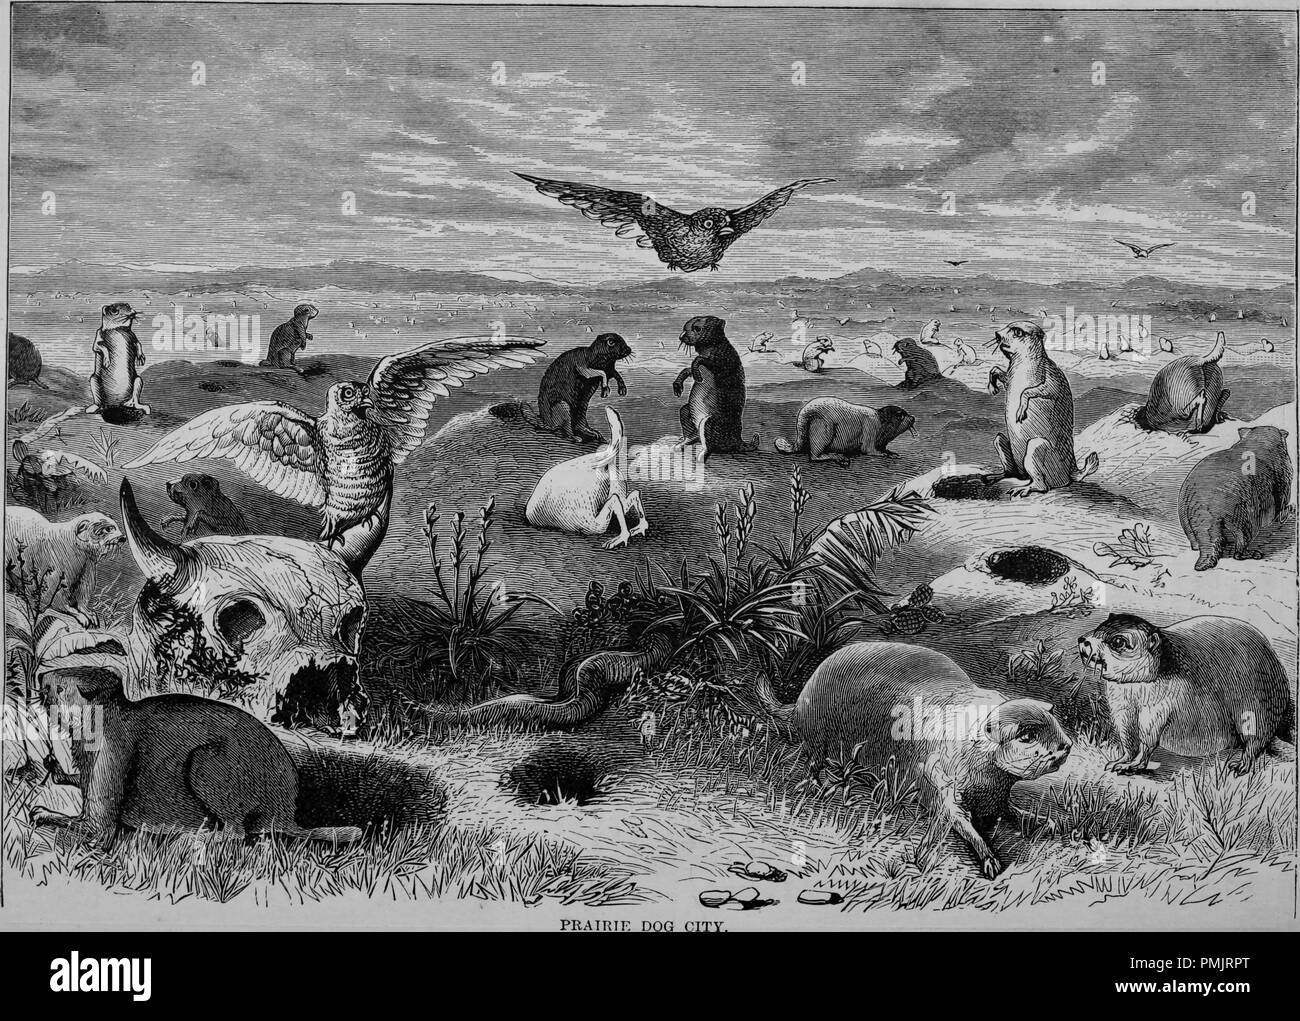 Engraving of the Prairie Dog City, from the book 'The Pacific tourist', 1877. Courtesy Internet Archive. () - Stock Image